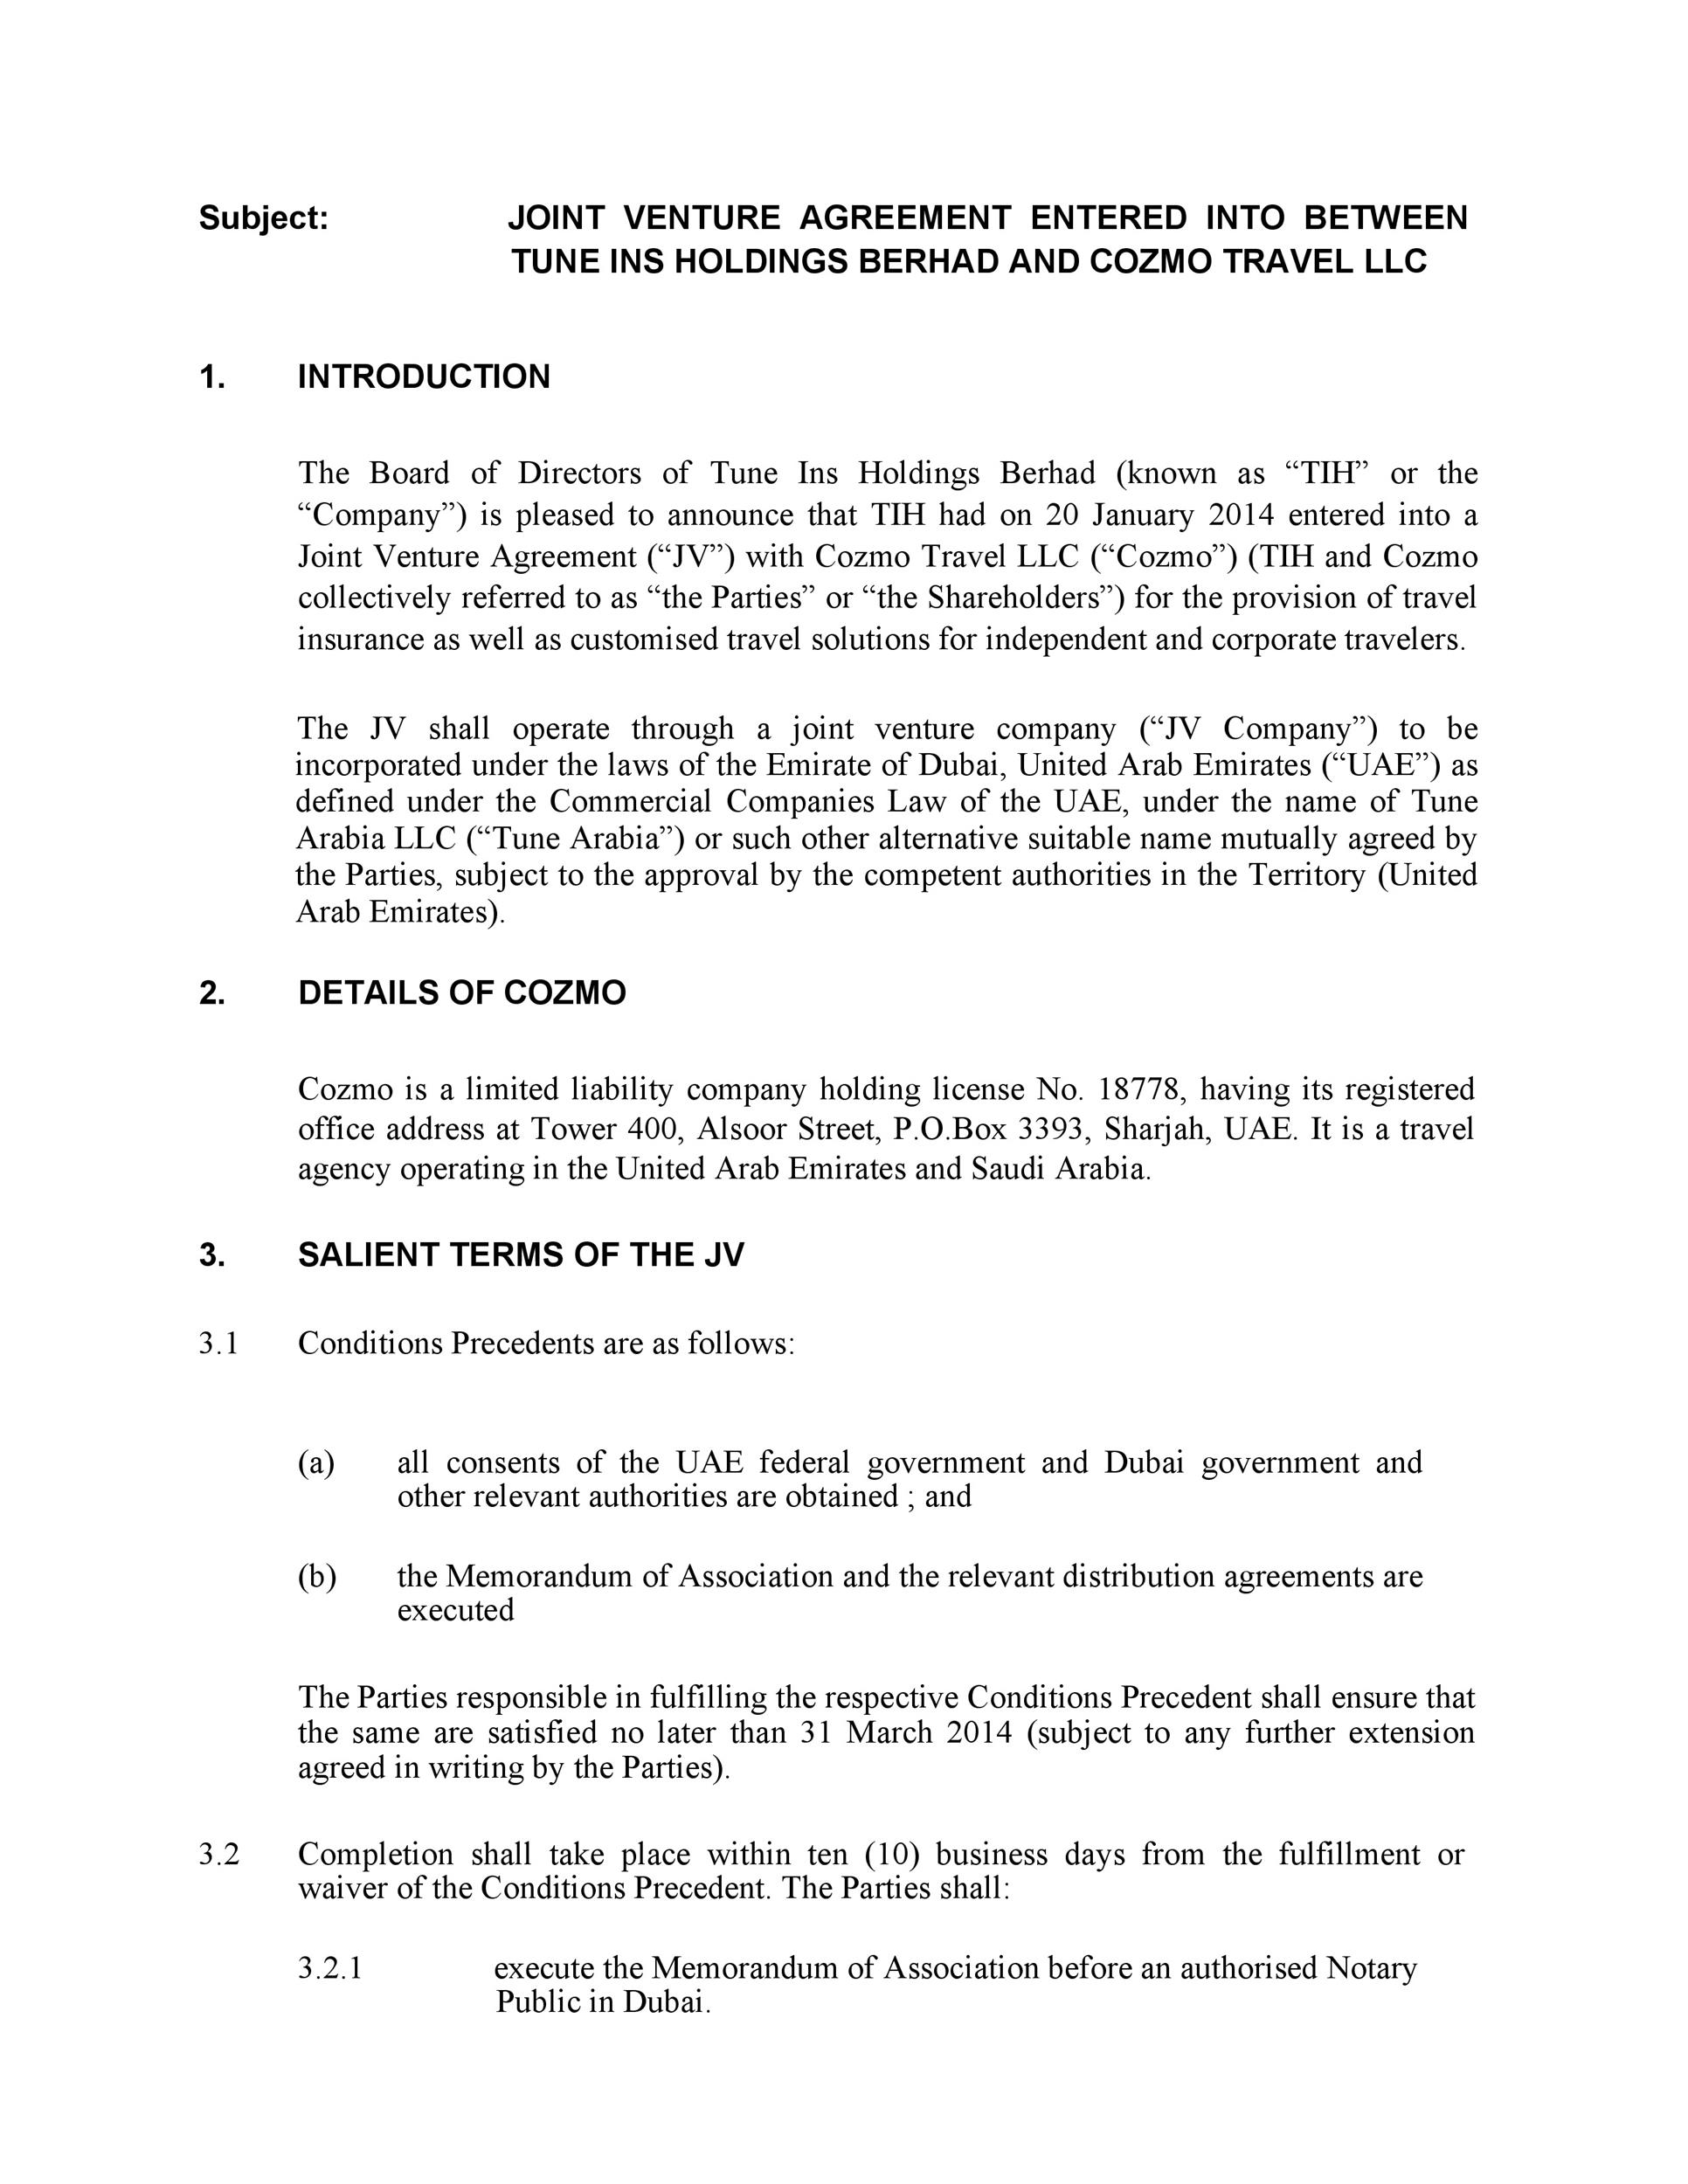 Joint Partnership Agreement Template joint venture agreement – Simple Joint Venture Agreement Sample